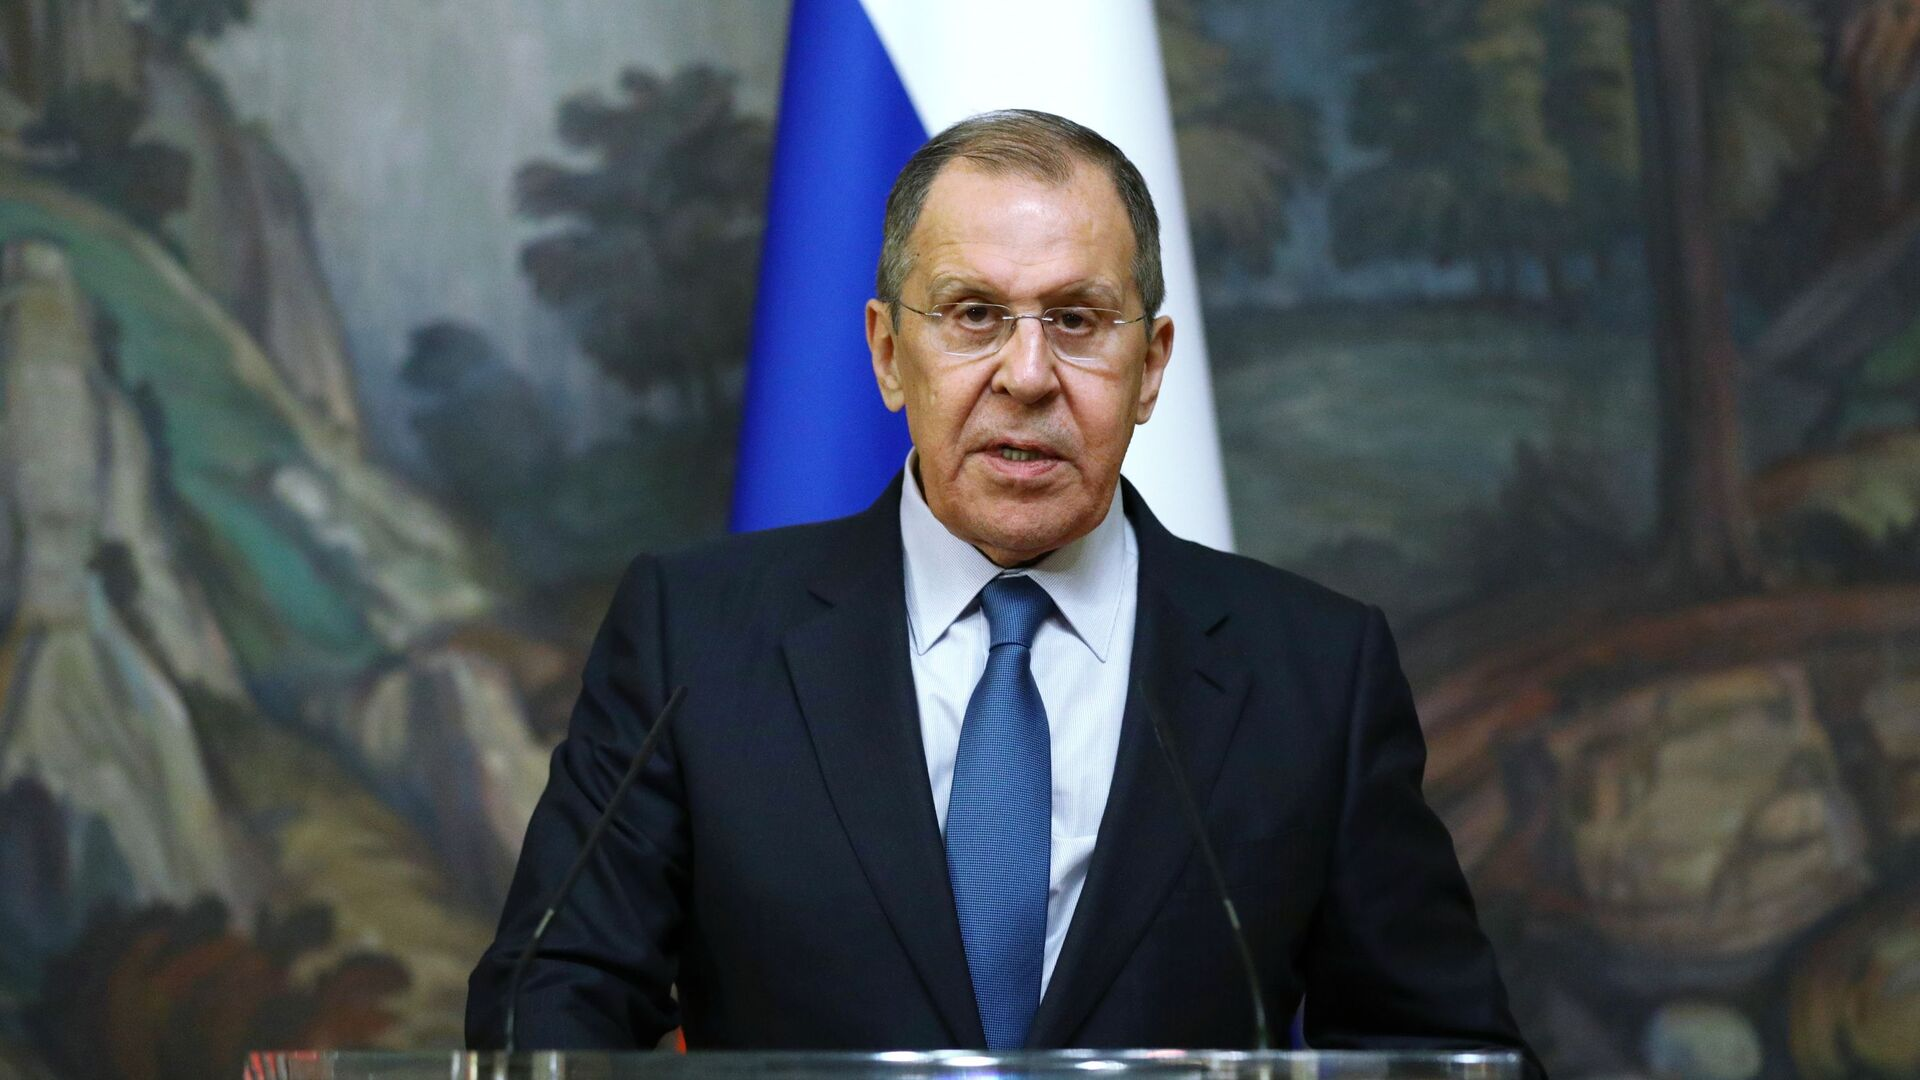 Russian Foreign Minister Sergey Lavrov delivers a joint statement after trilateral talks between Russia, Armenia and Azerbaijan over Nagorno-Karabakh ceasefire, 10 October 2020 - Sputnik Italia, 1920, 26.09.2021